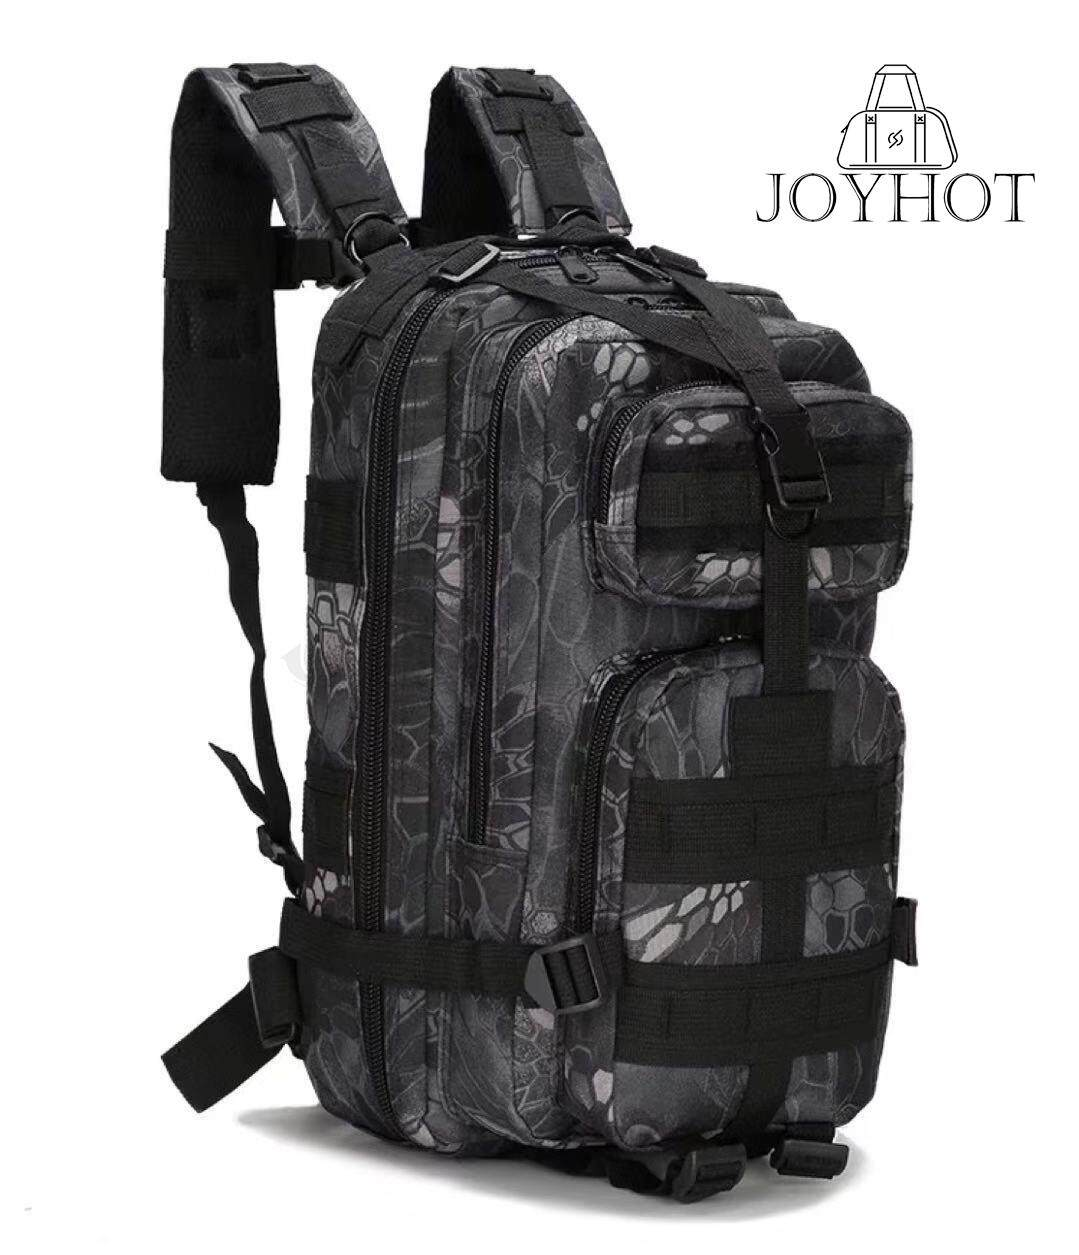 JOYHOT กระเป๋าเป้ท่องป่า รุ่น the forest 25L ลิตร Outdoor Backpack for Hiking & Camping